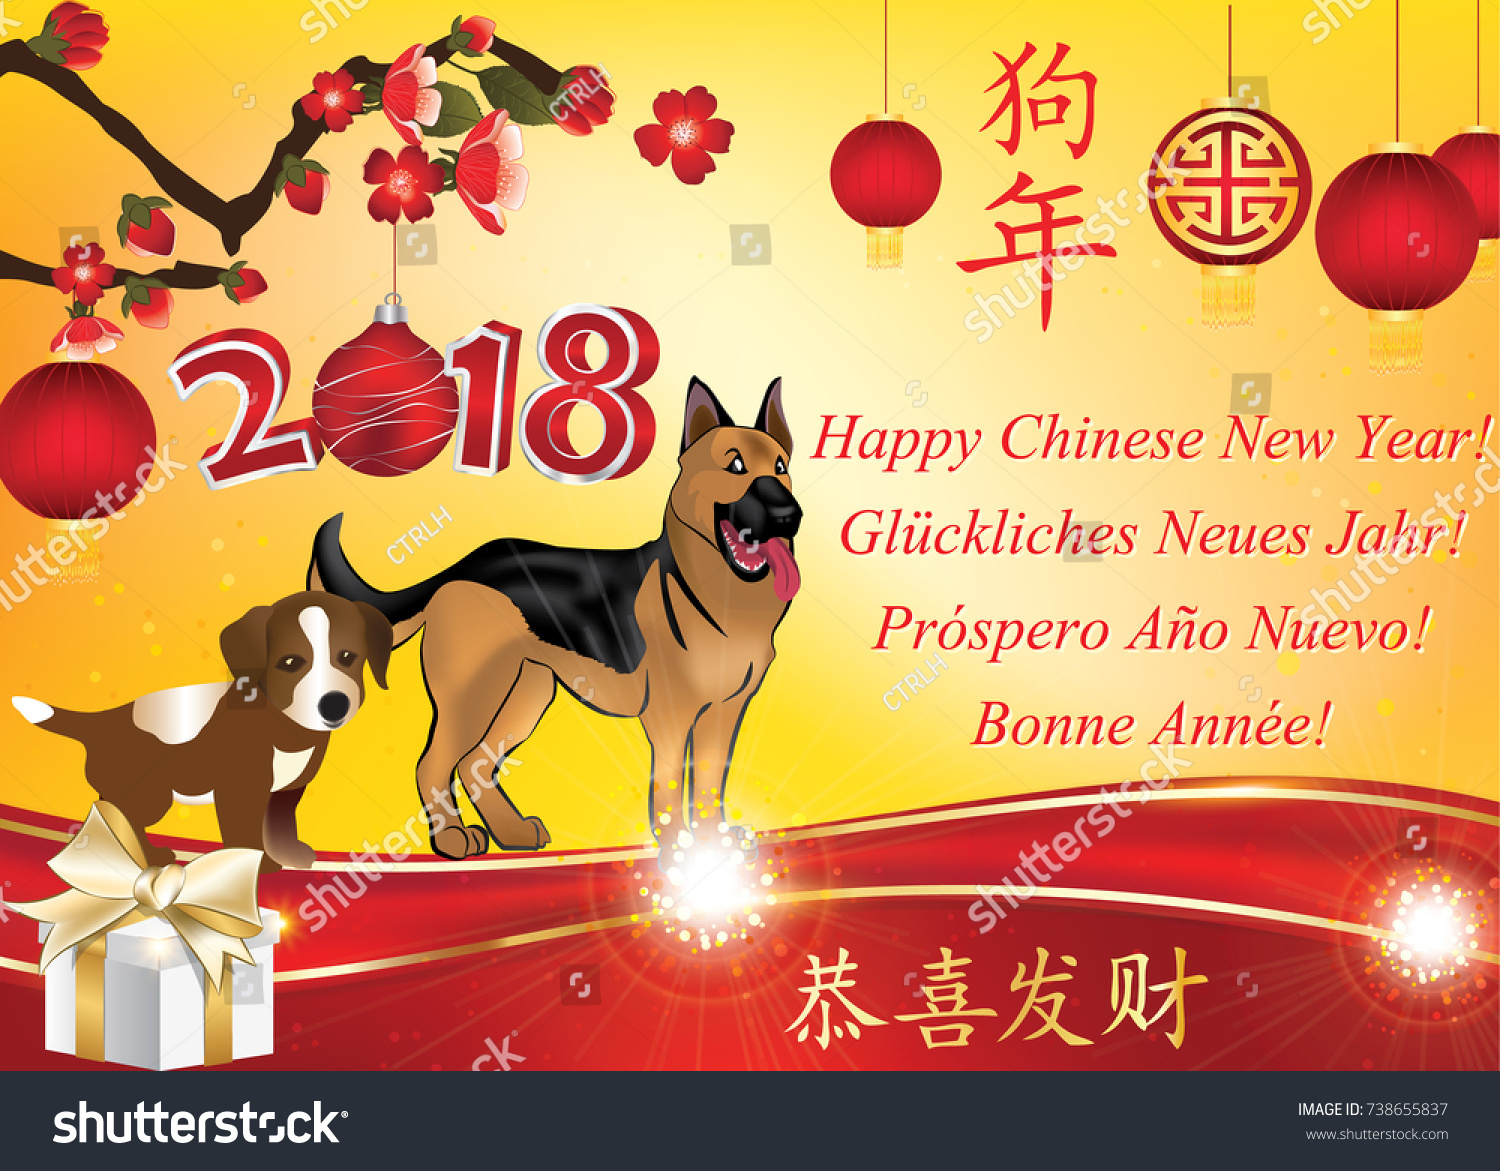 greeting card for the chinese new year 2018 of the dog with the message happy